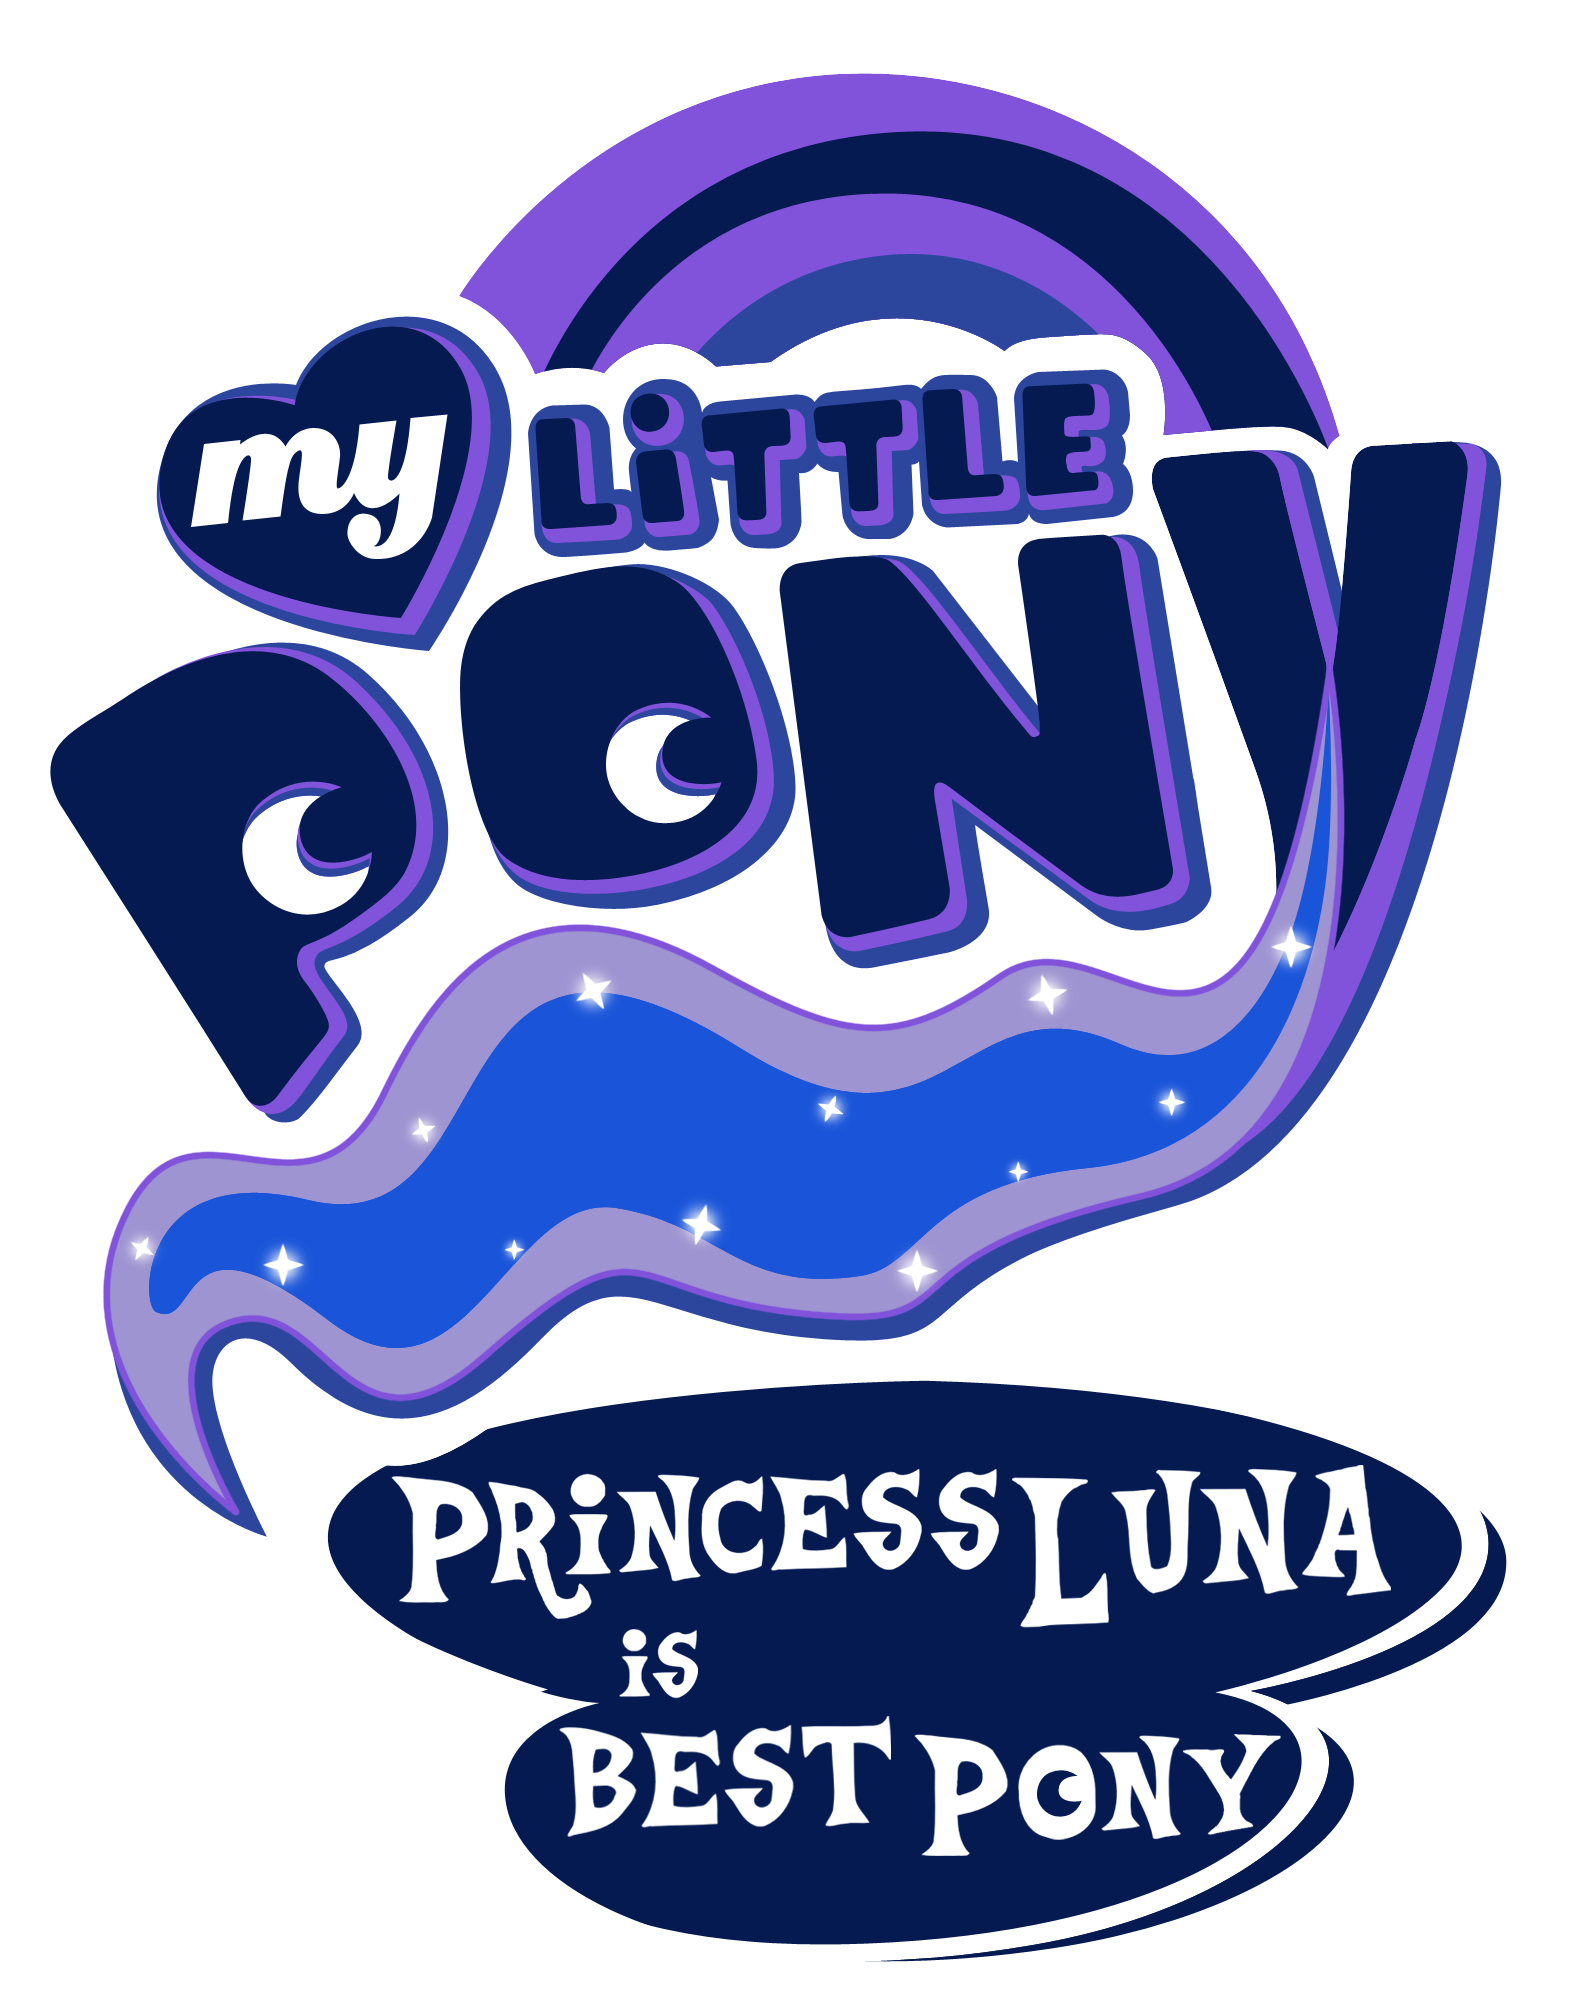 http://vignette2.wikia.nocookie.net/mlpfanart/images/a/a8/My_Little_Pony_Princess_Luna_is_best_pony_by_artist-jamescorck.png/revision/latest?cb=20121229080211